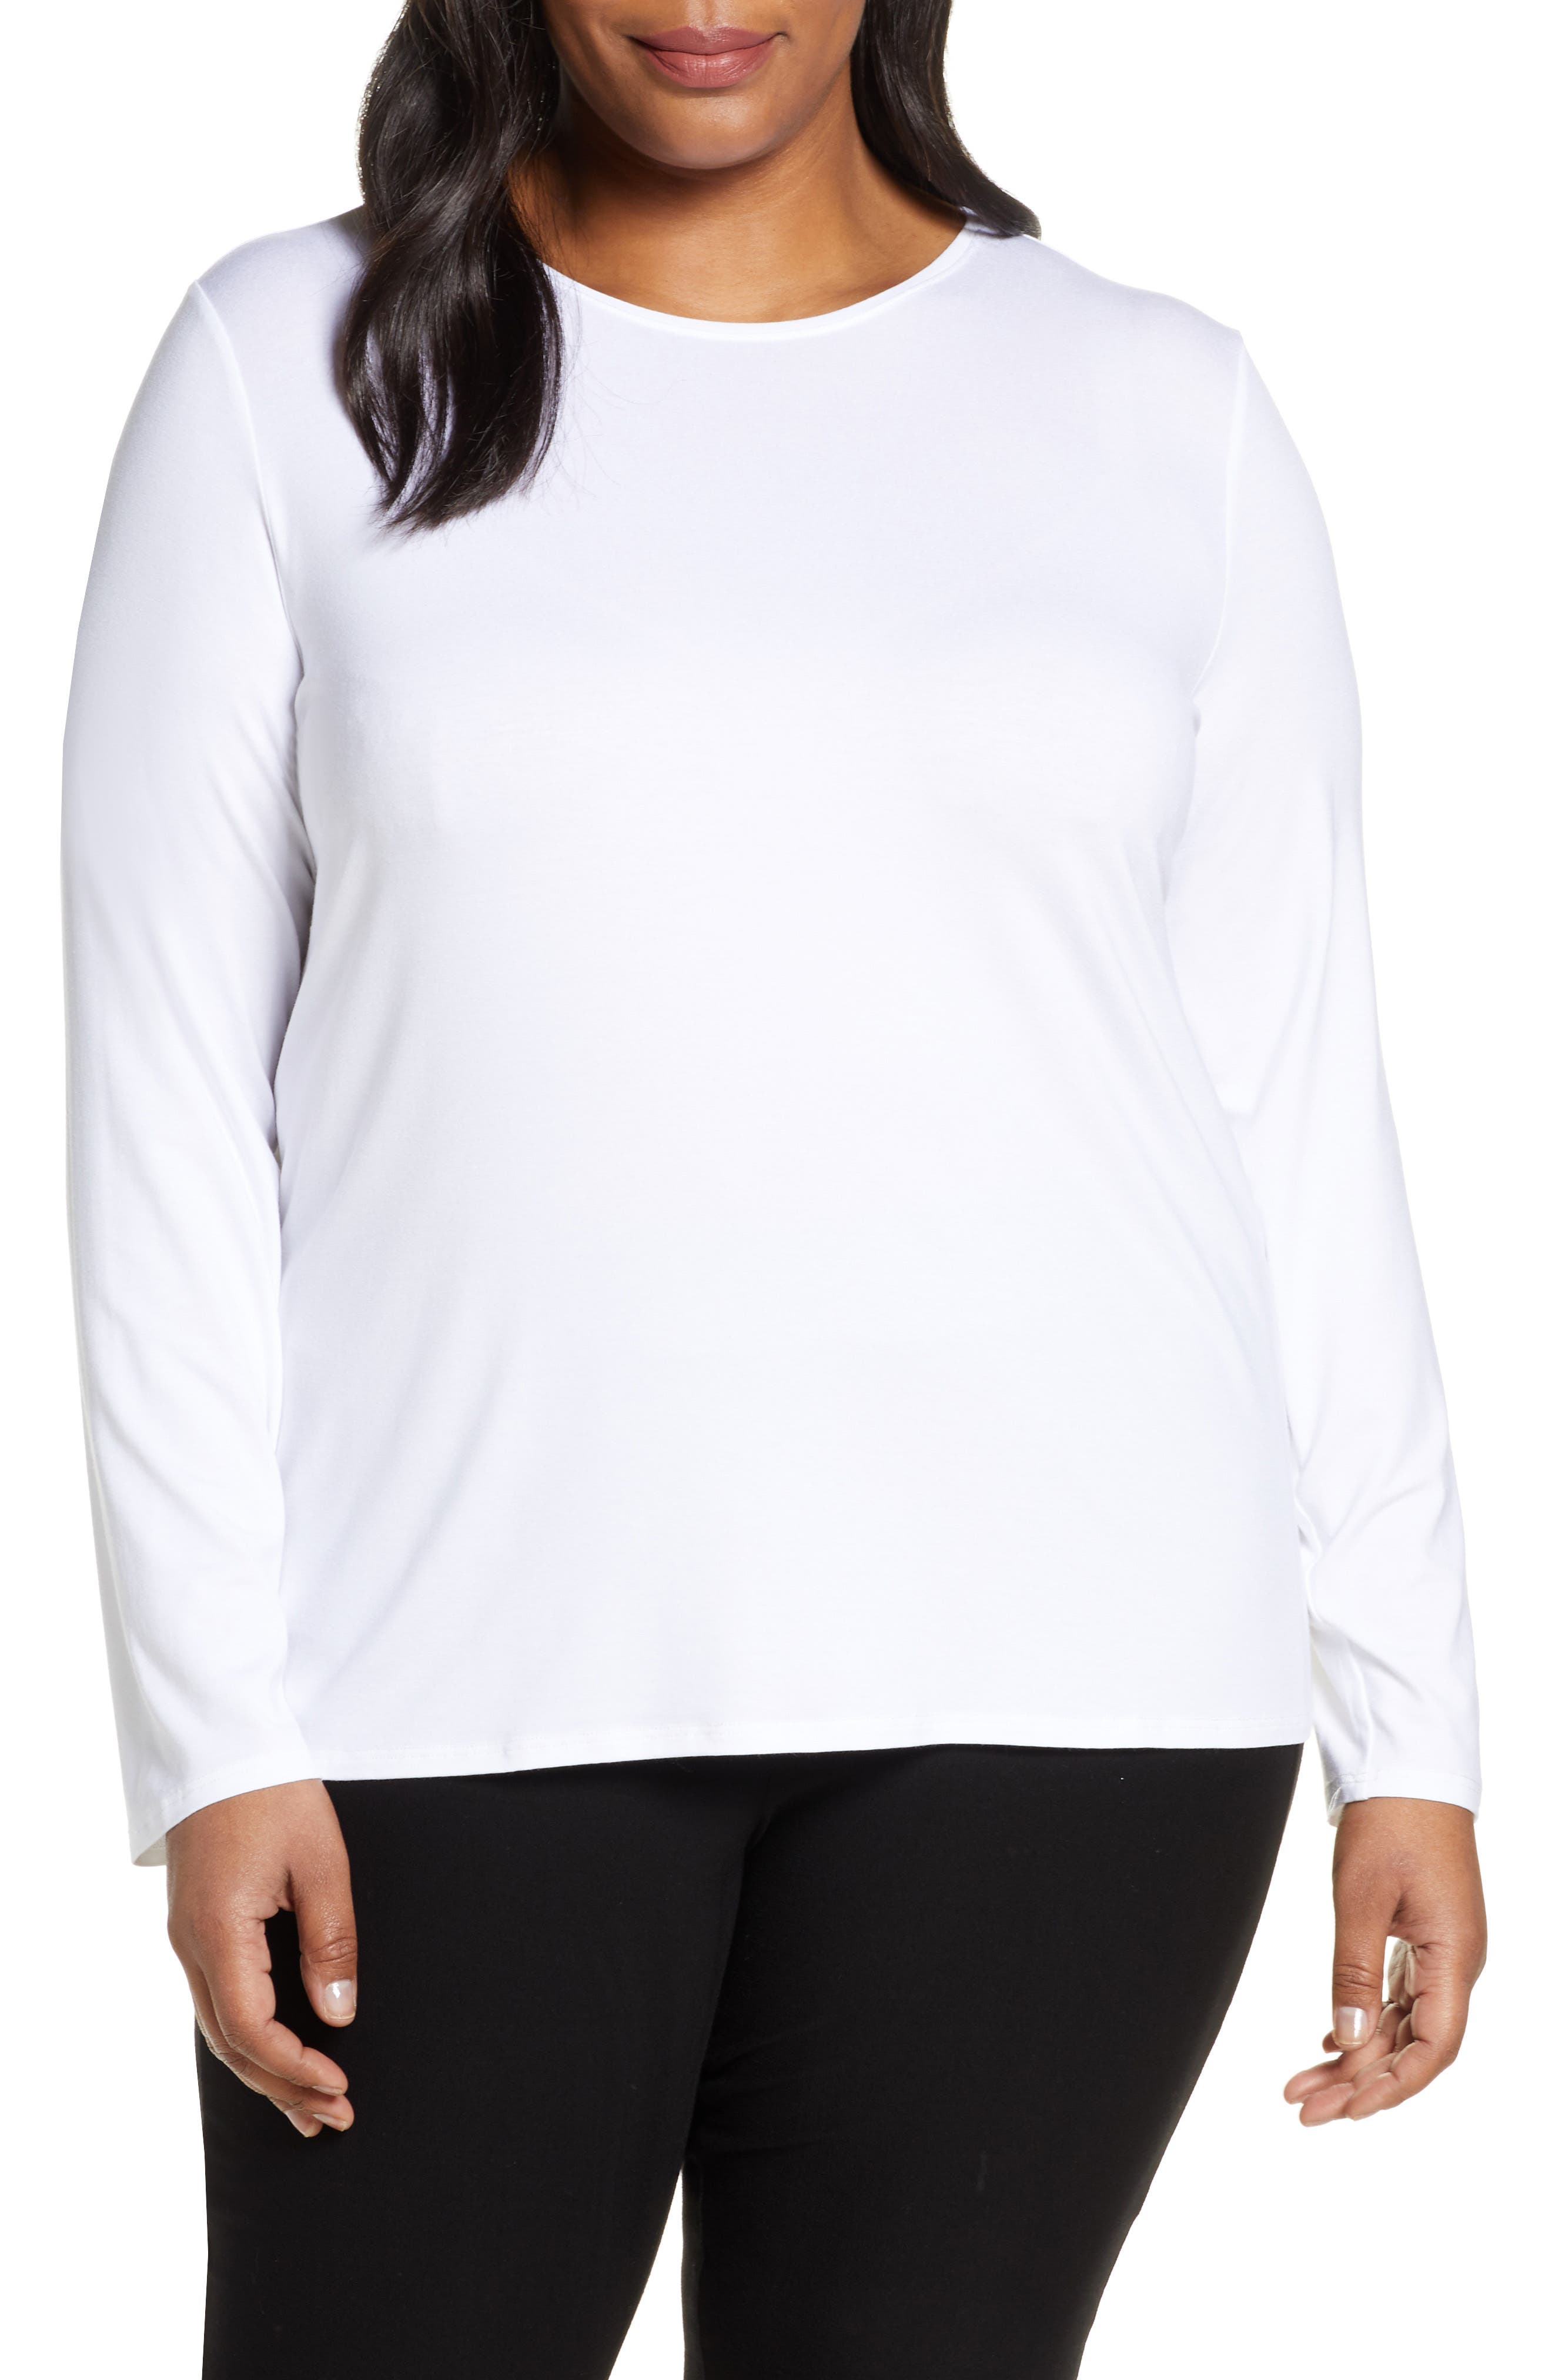 Land/'s End 100/% CASHMERE 2-PLY LS Jewel Nk Tee Top Sweater LS Petite /& Plus Size